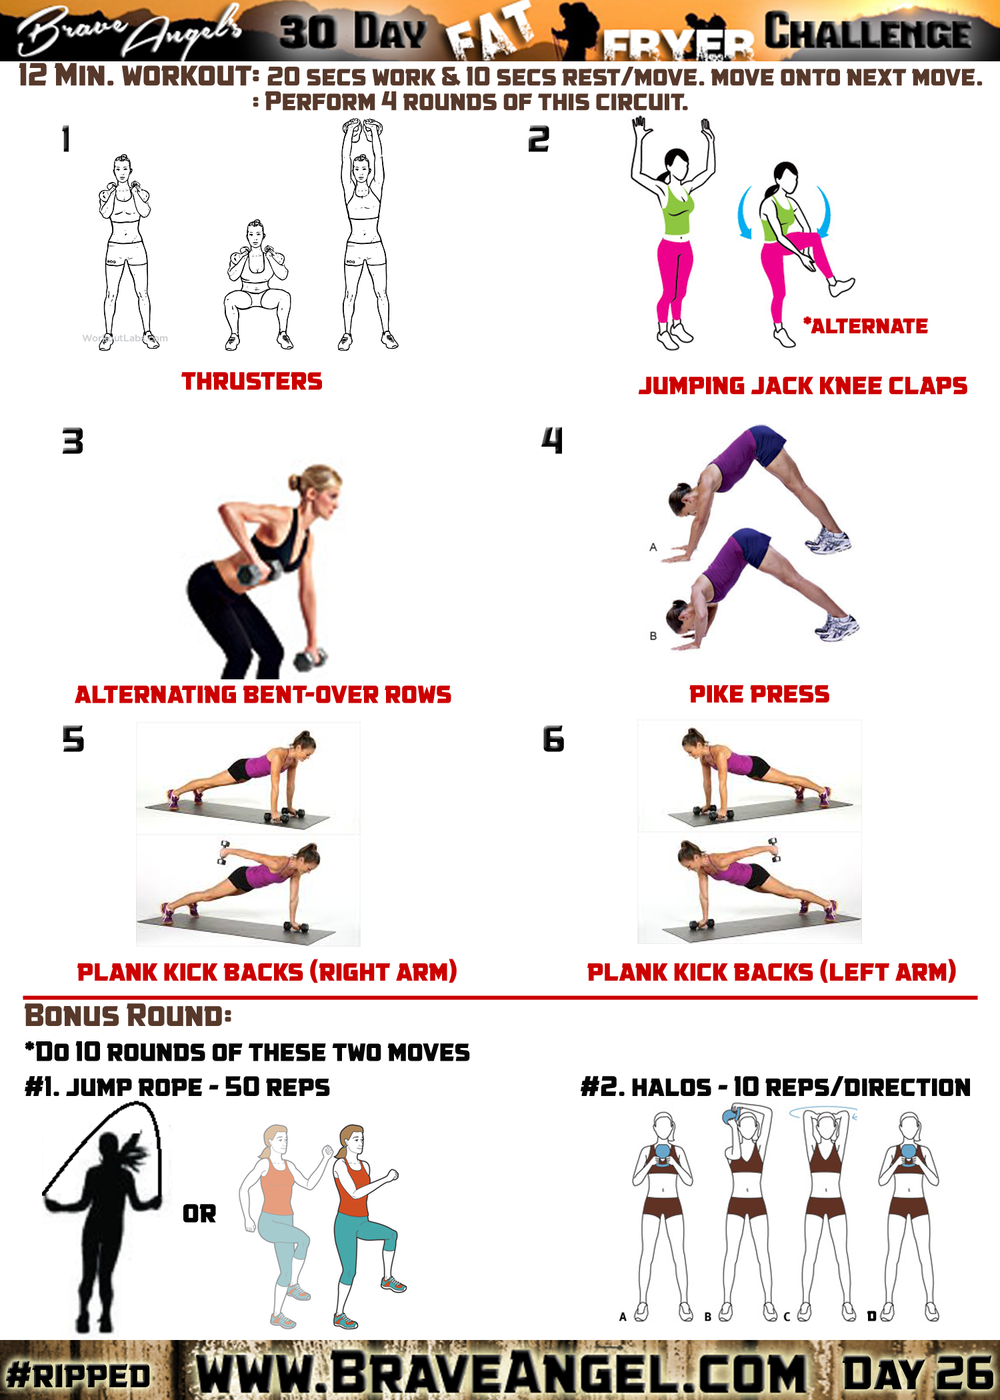 Day 26 WOD - #ripped — Warrior Girl Fitness